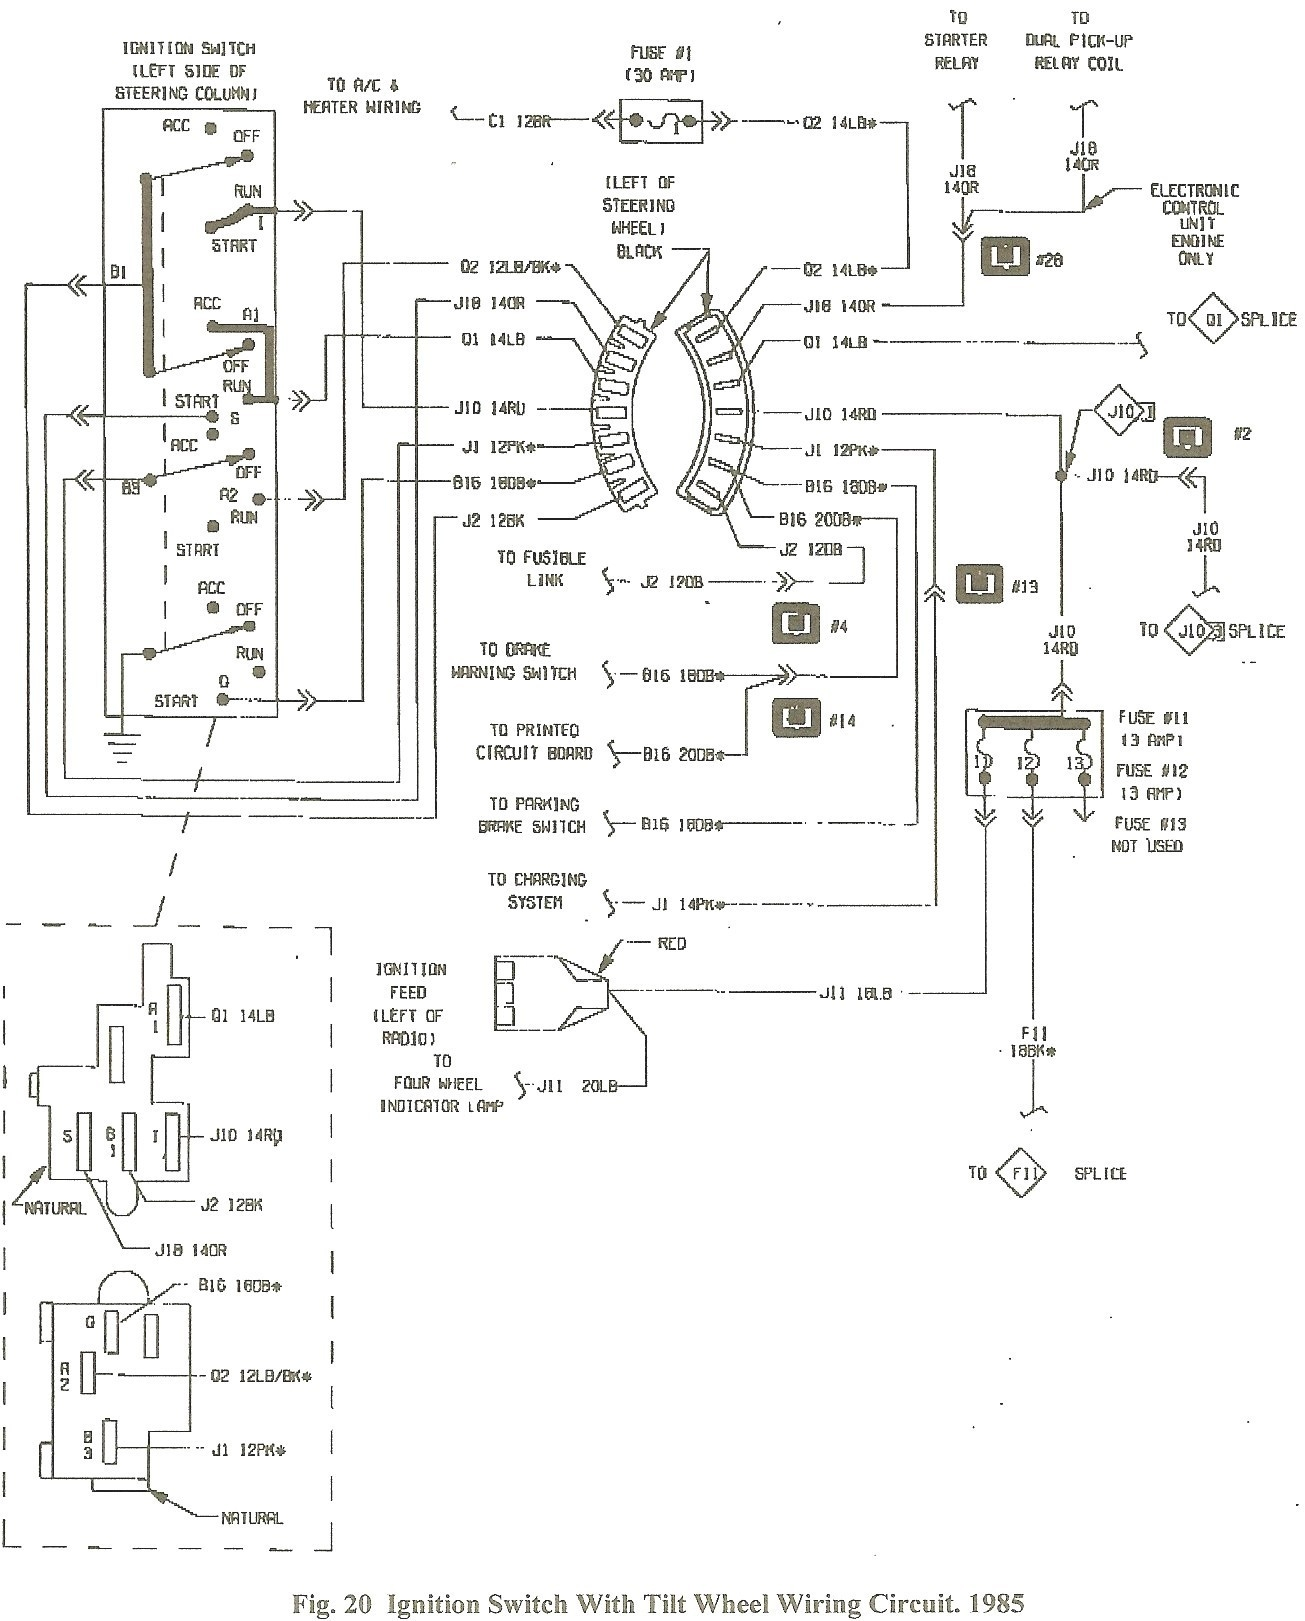 2001 dodge sel wiring diagram wiring diagram photos for help your